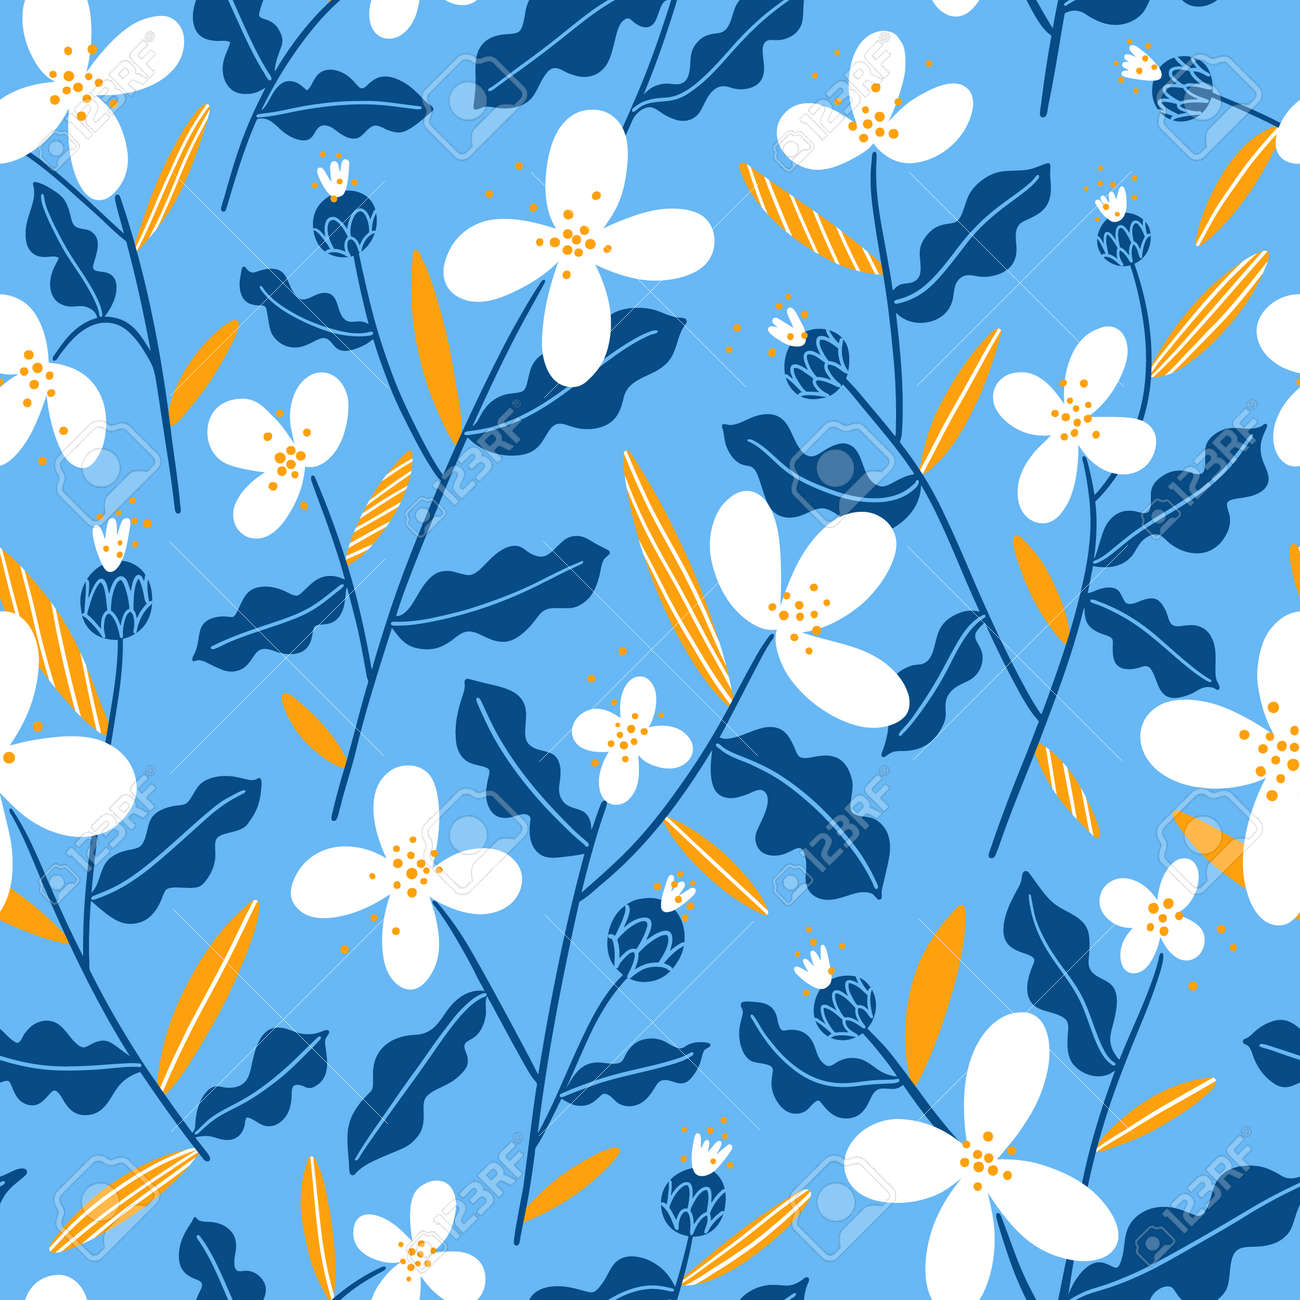 Abstract winter mood white, yellow and blue flowers, vector seamless pattern on light blue background - 161174353